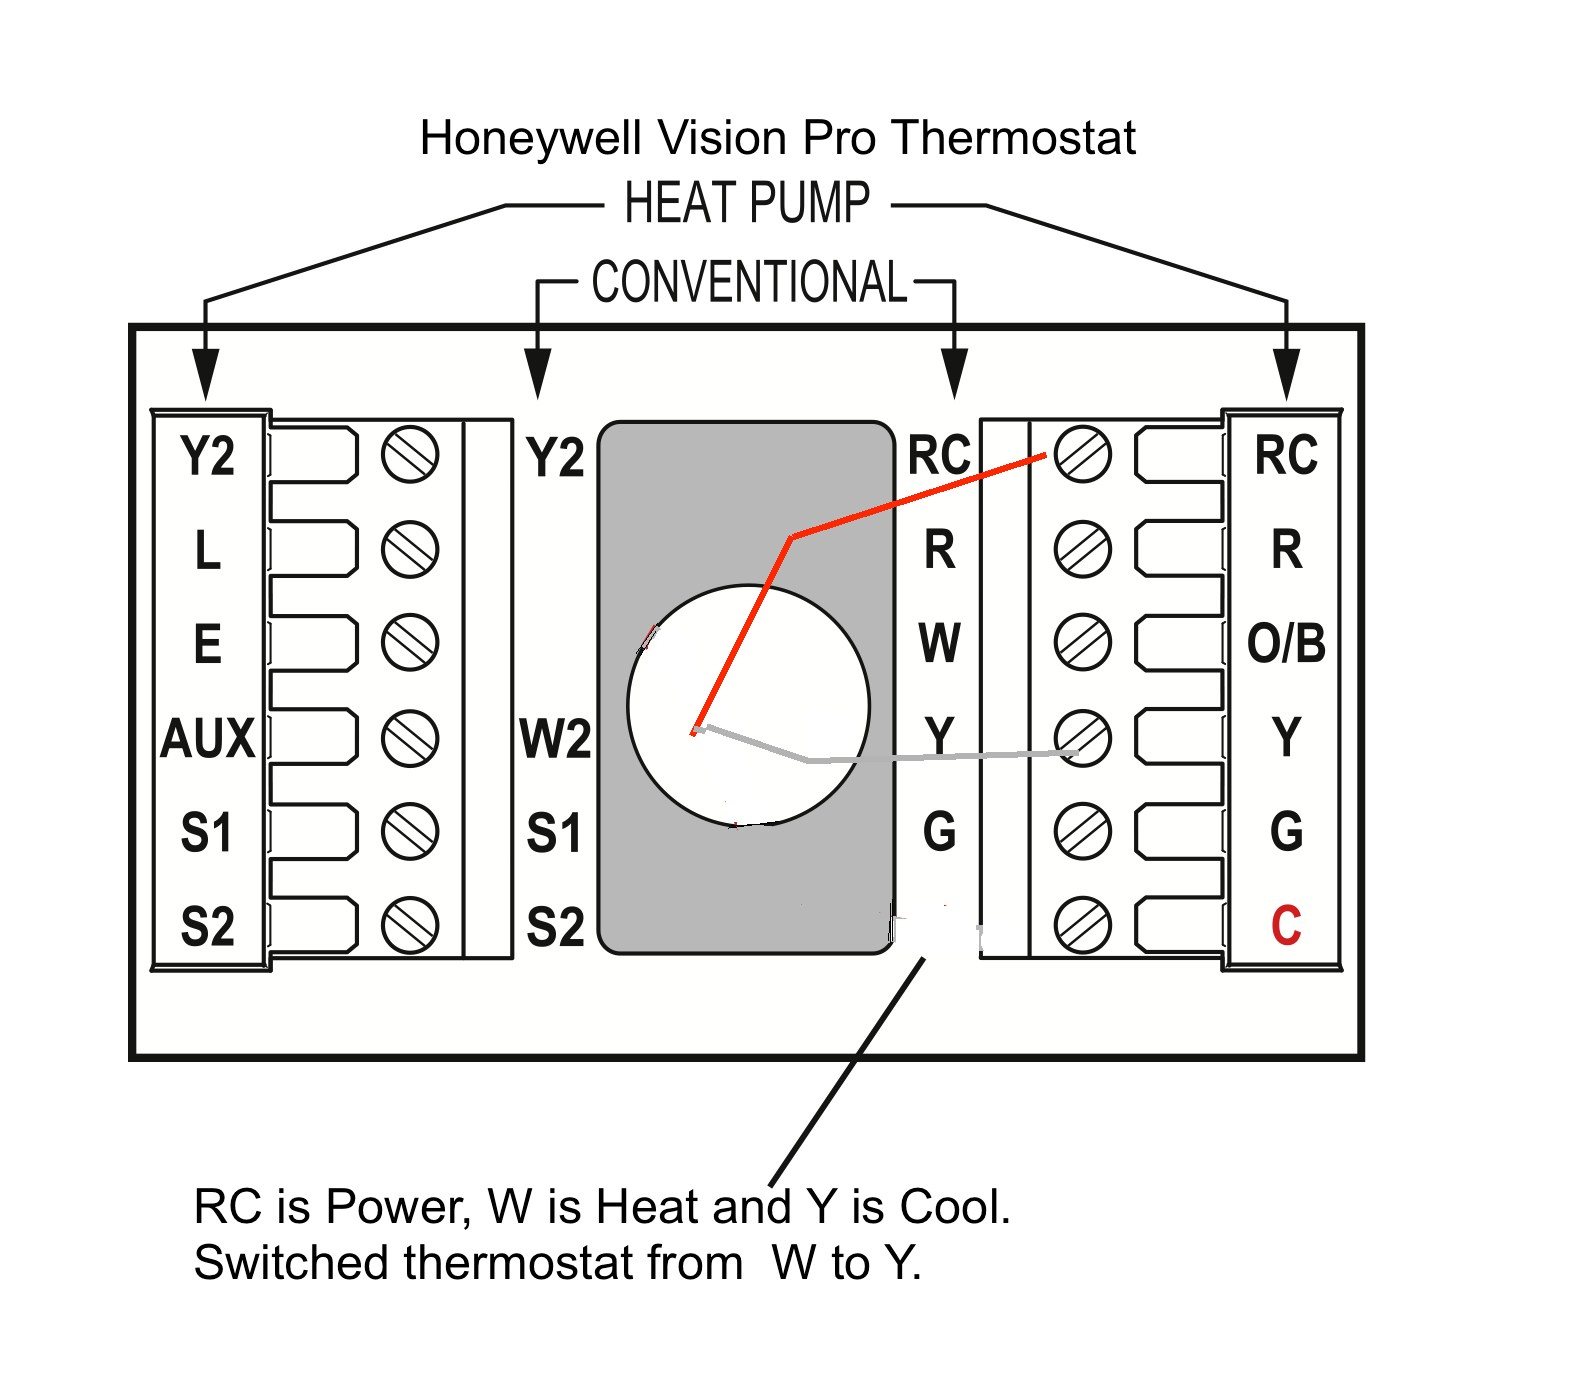 Radiant Heat: Thermostat Wiring For Radiant Heat - Nest Thermostat Wiring Diagram For Radiant Heat And Slab Sensor